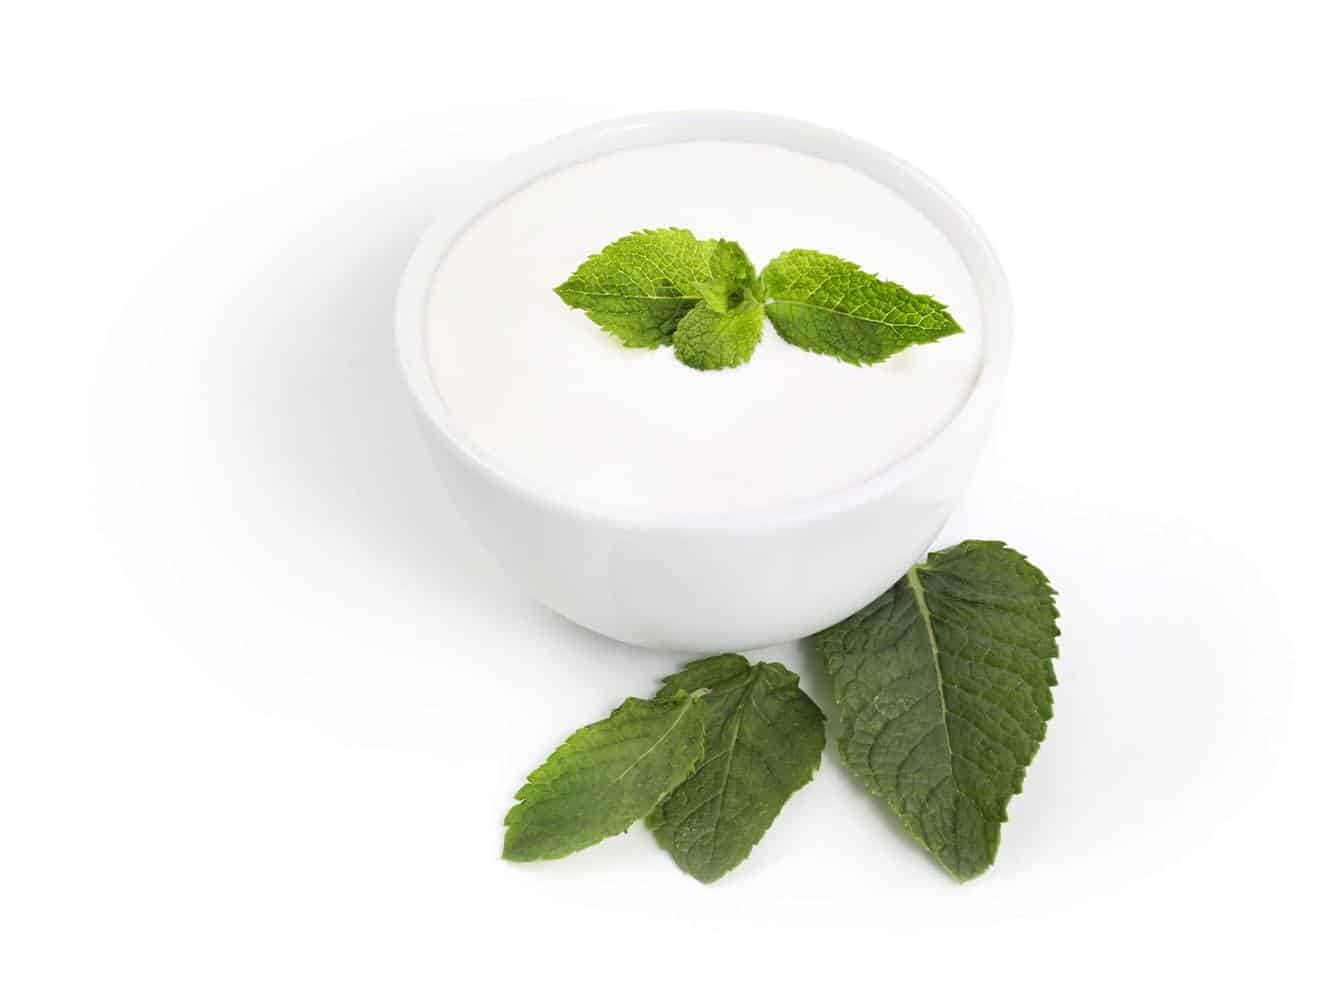 A bowl of yogurt and leaves.